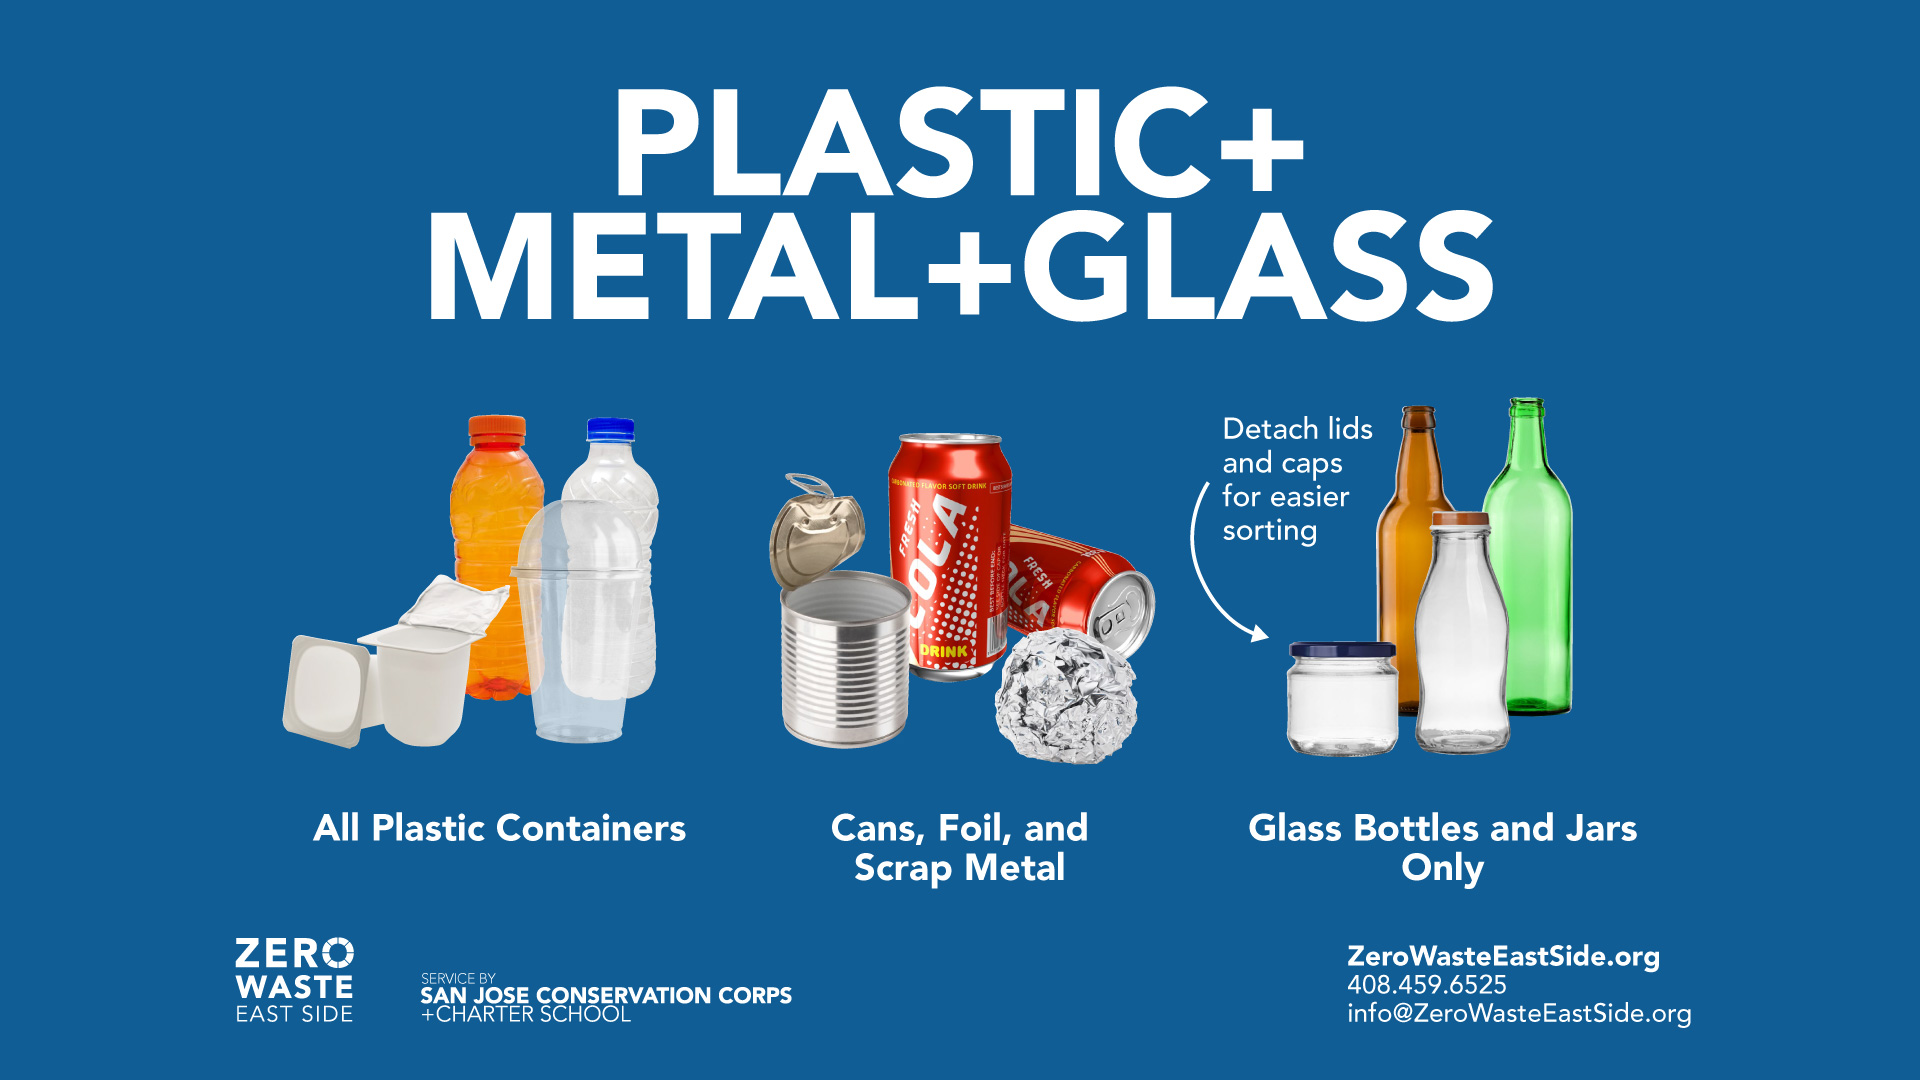 Blue label for Plastic Metal and Glass recycling with photos showing accepted materials.